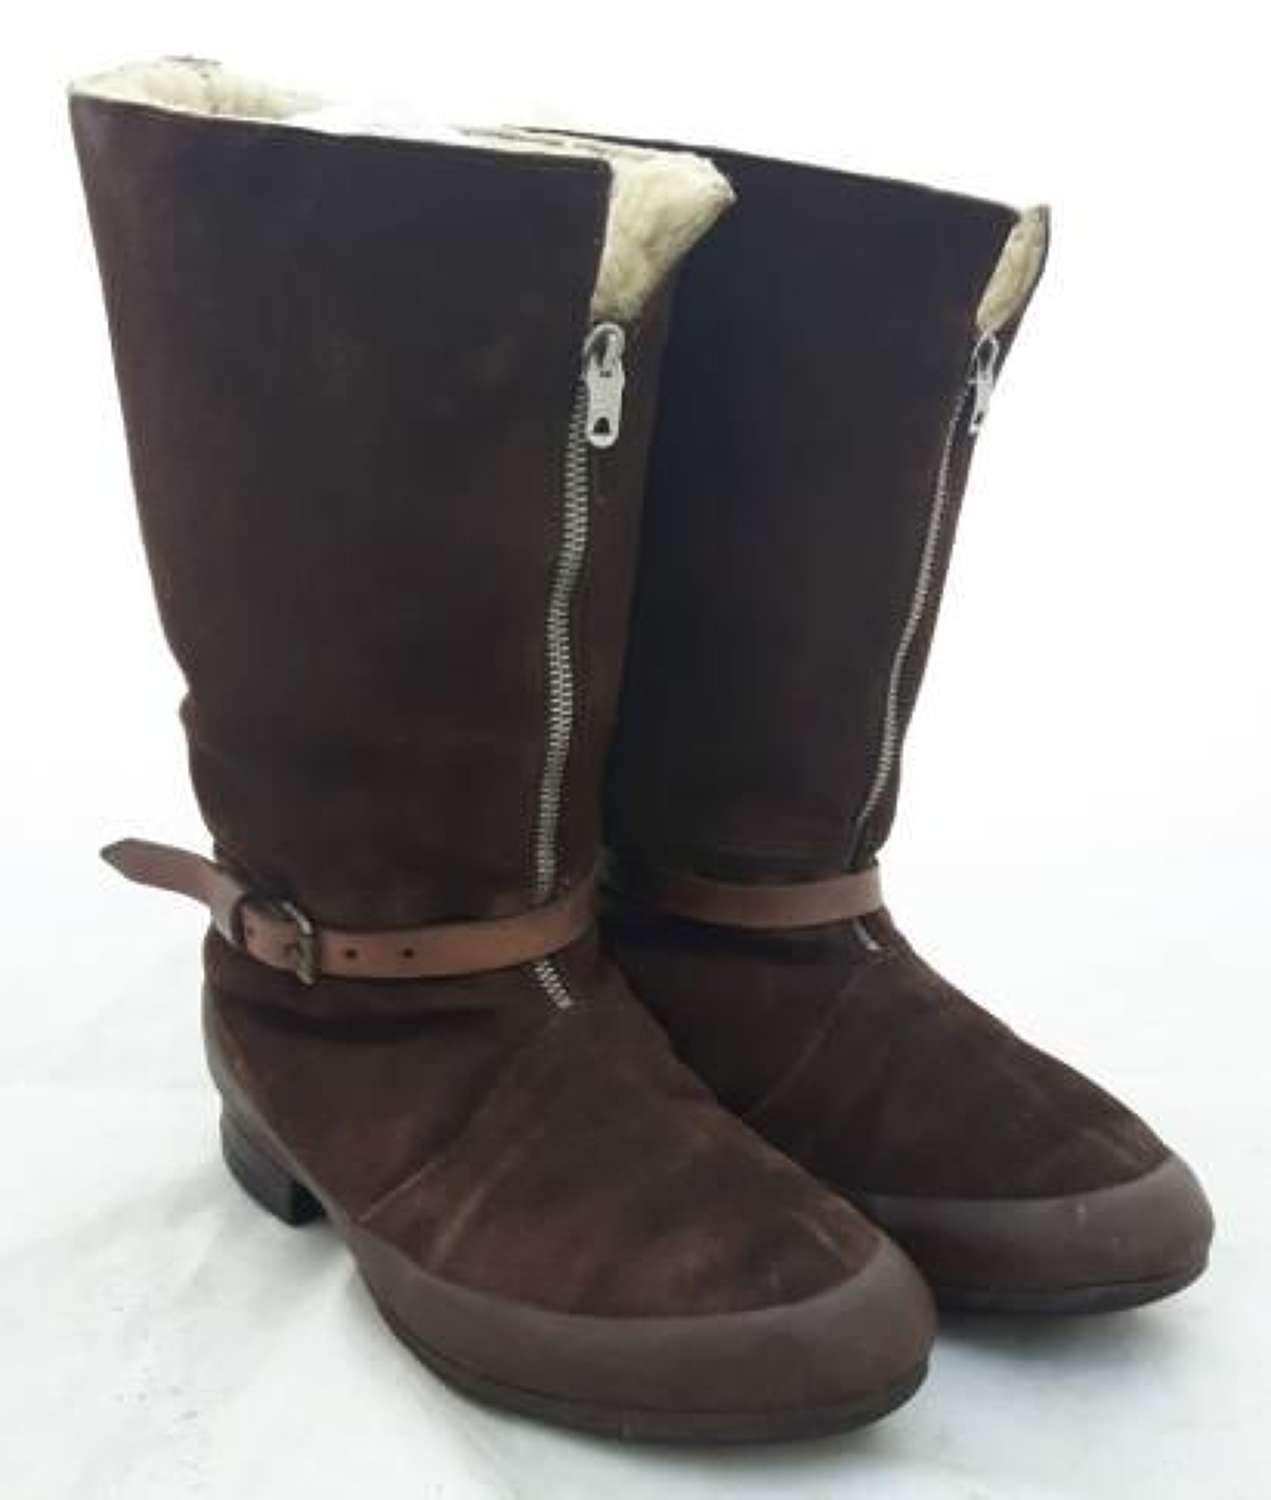 Oustanding 1941 Pattern Flying Boots With Brown Rubber - Size 9